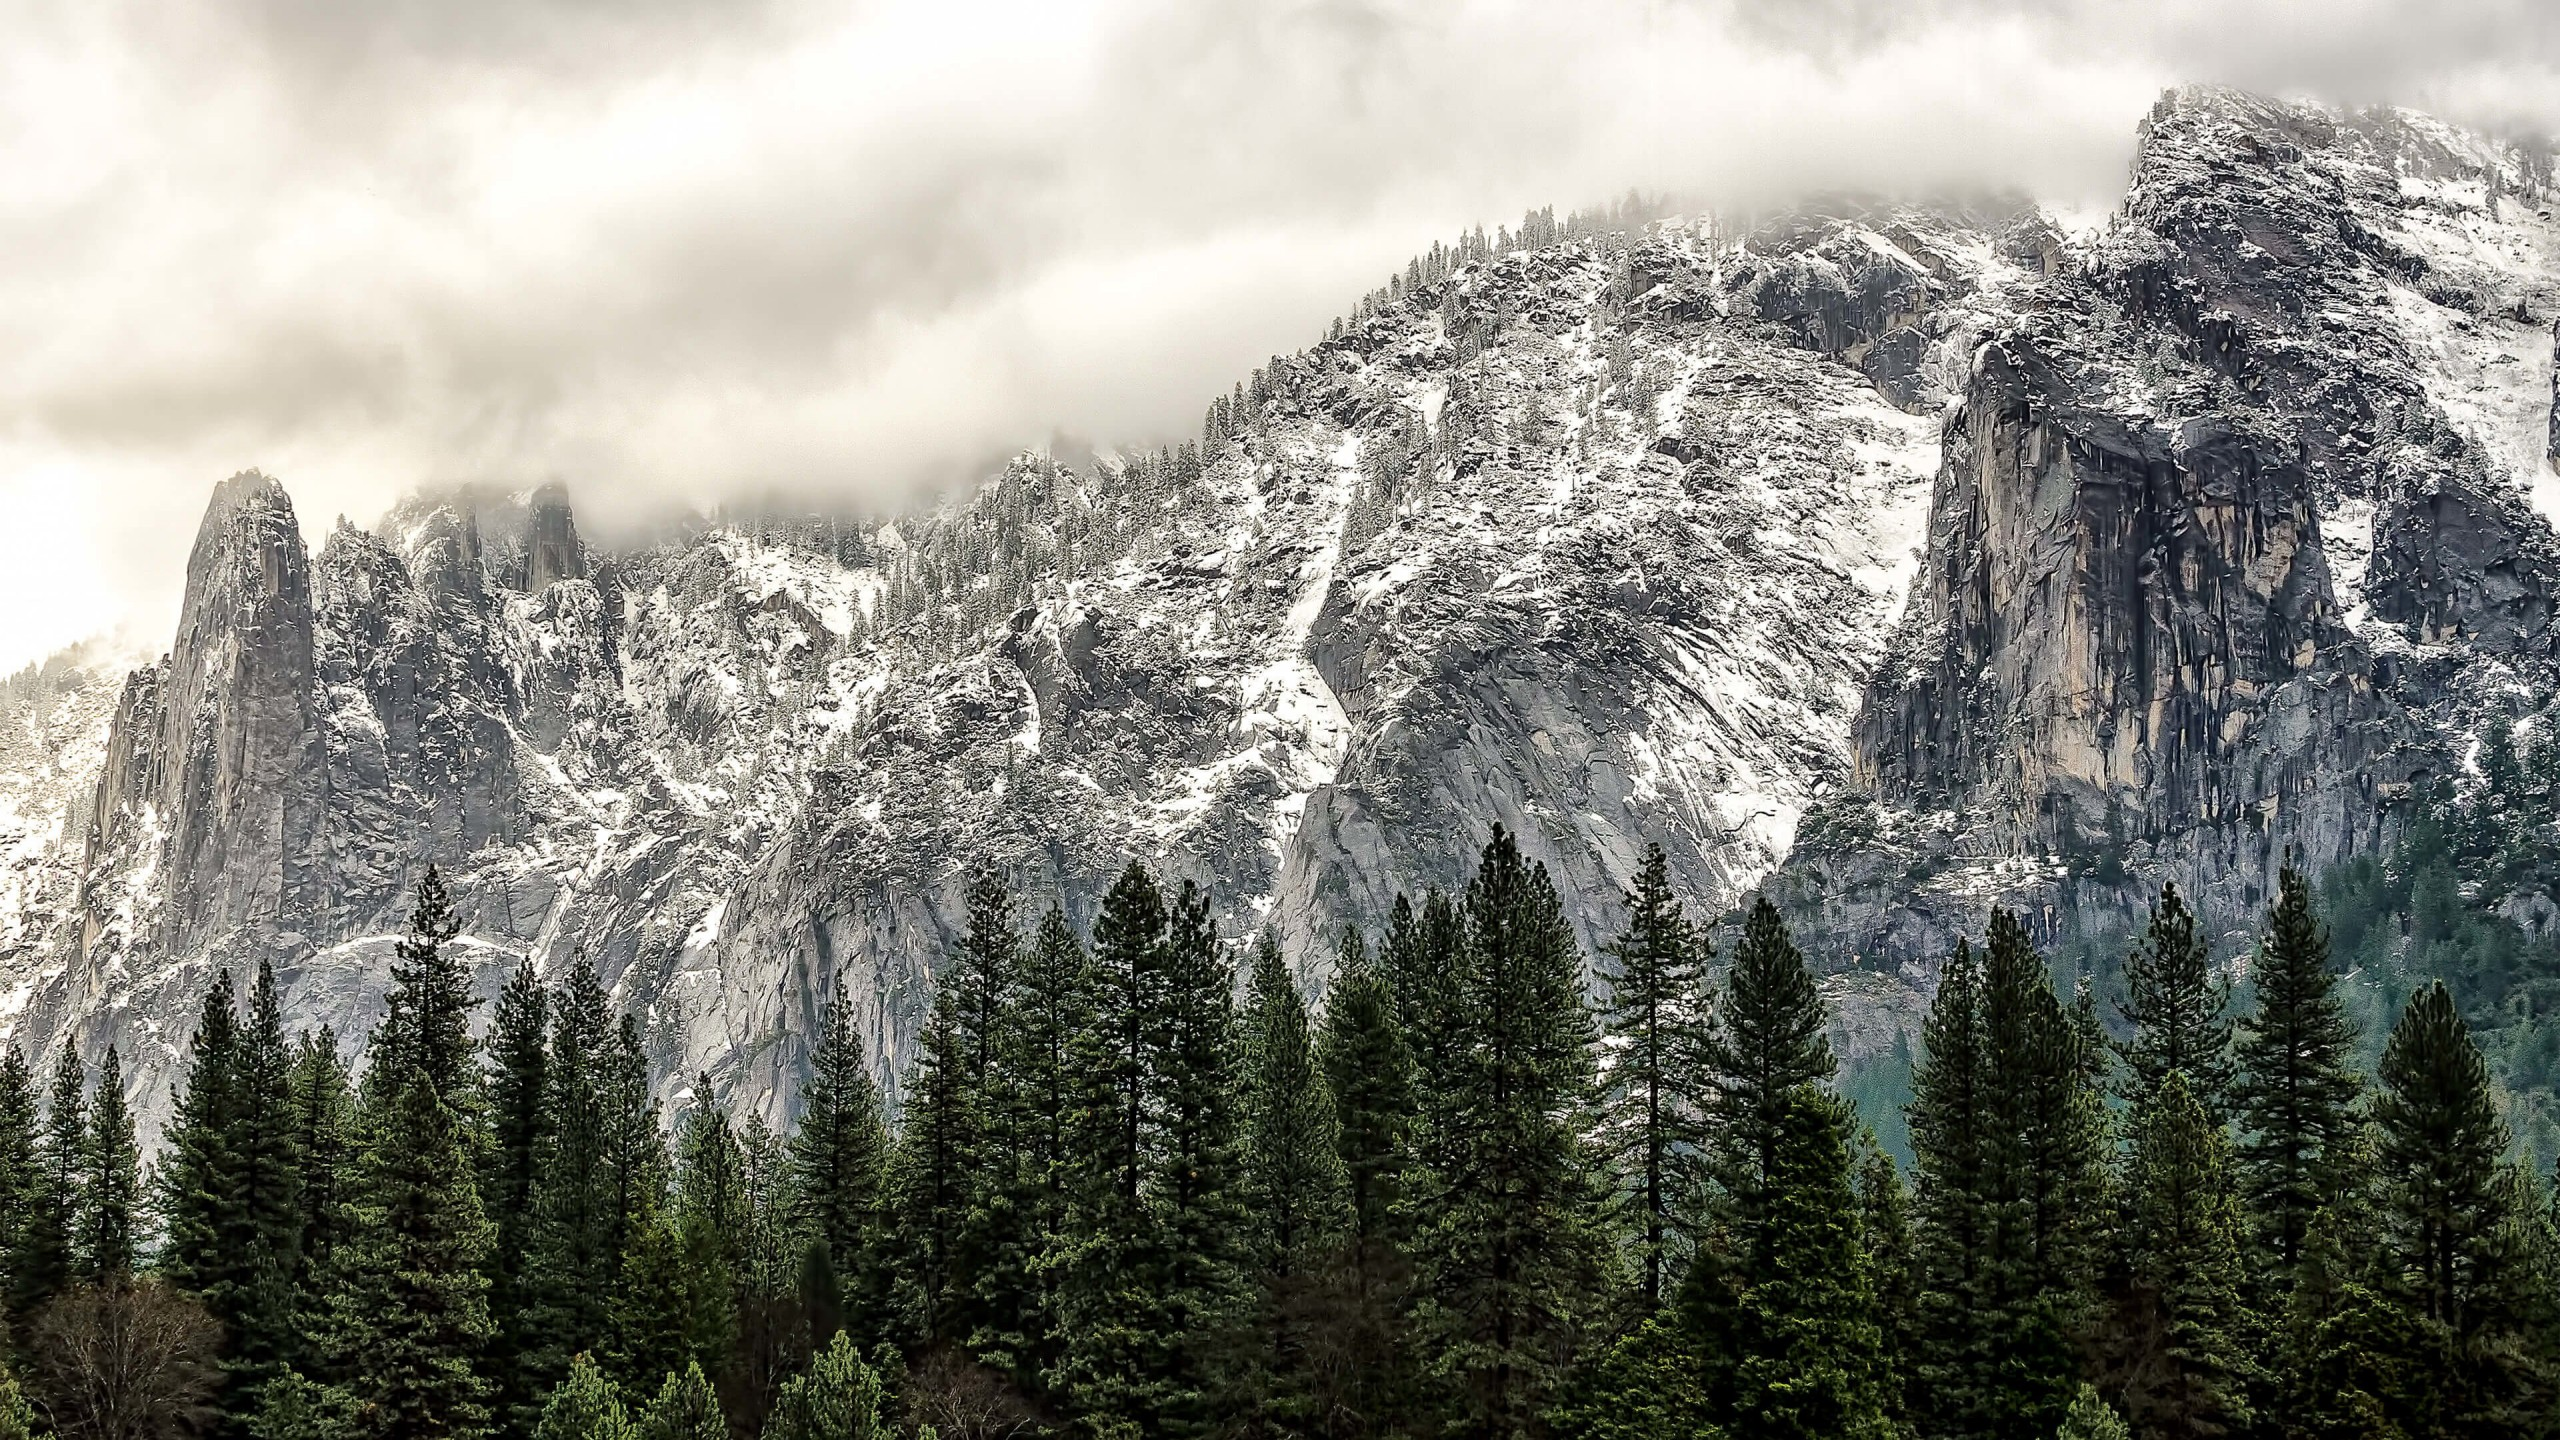 Winter Day at Yosemite National Park Wallpaper for Desktop 2560x1440